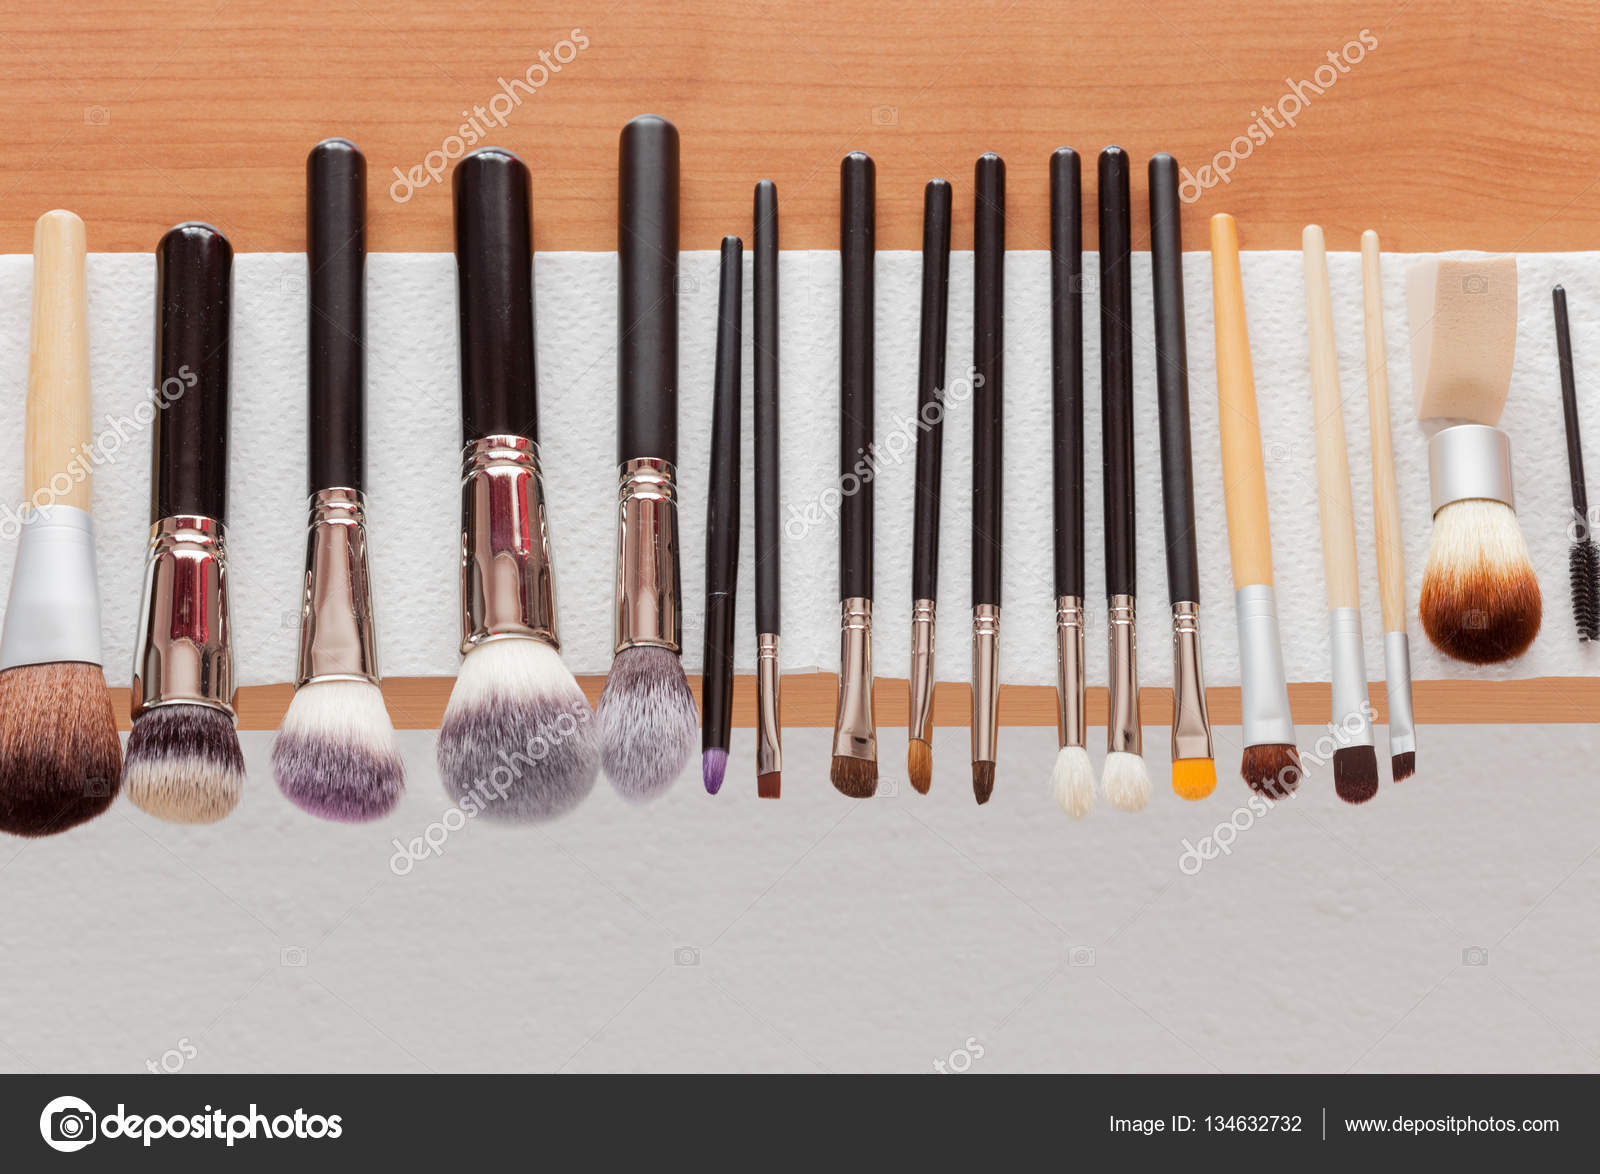 how to clean makeup brushes in microwave